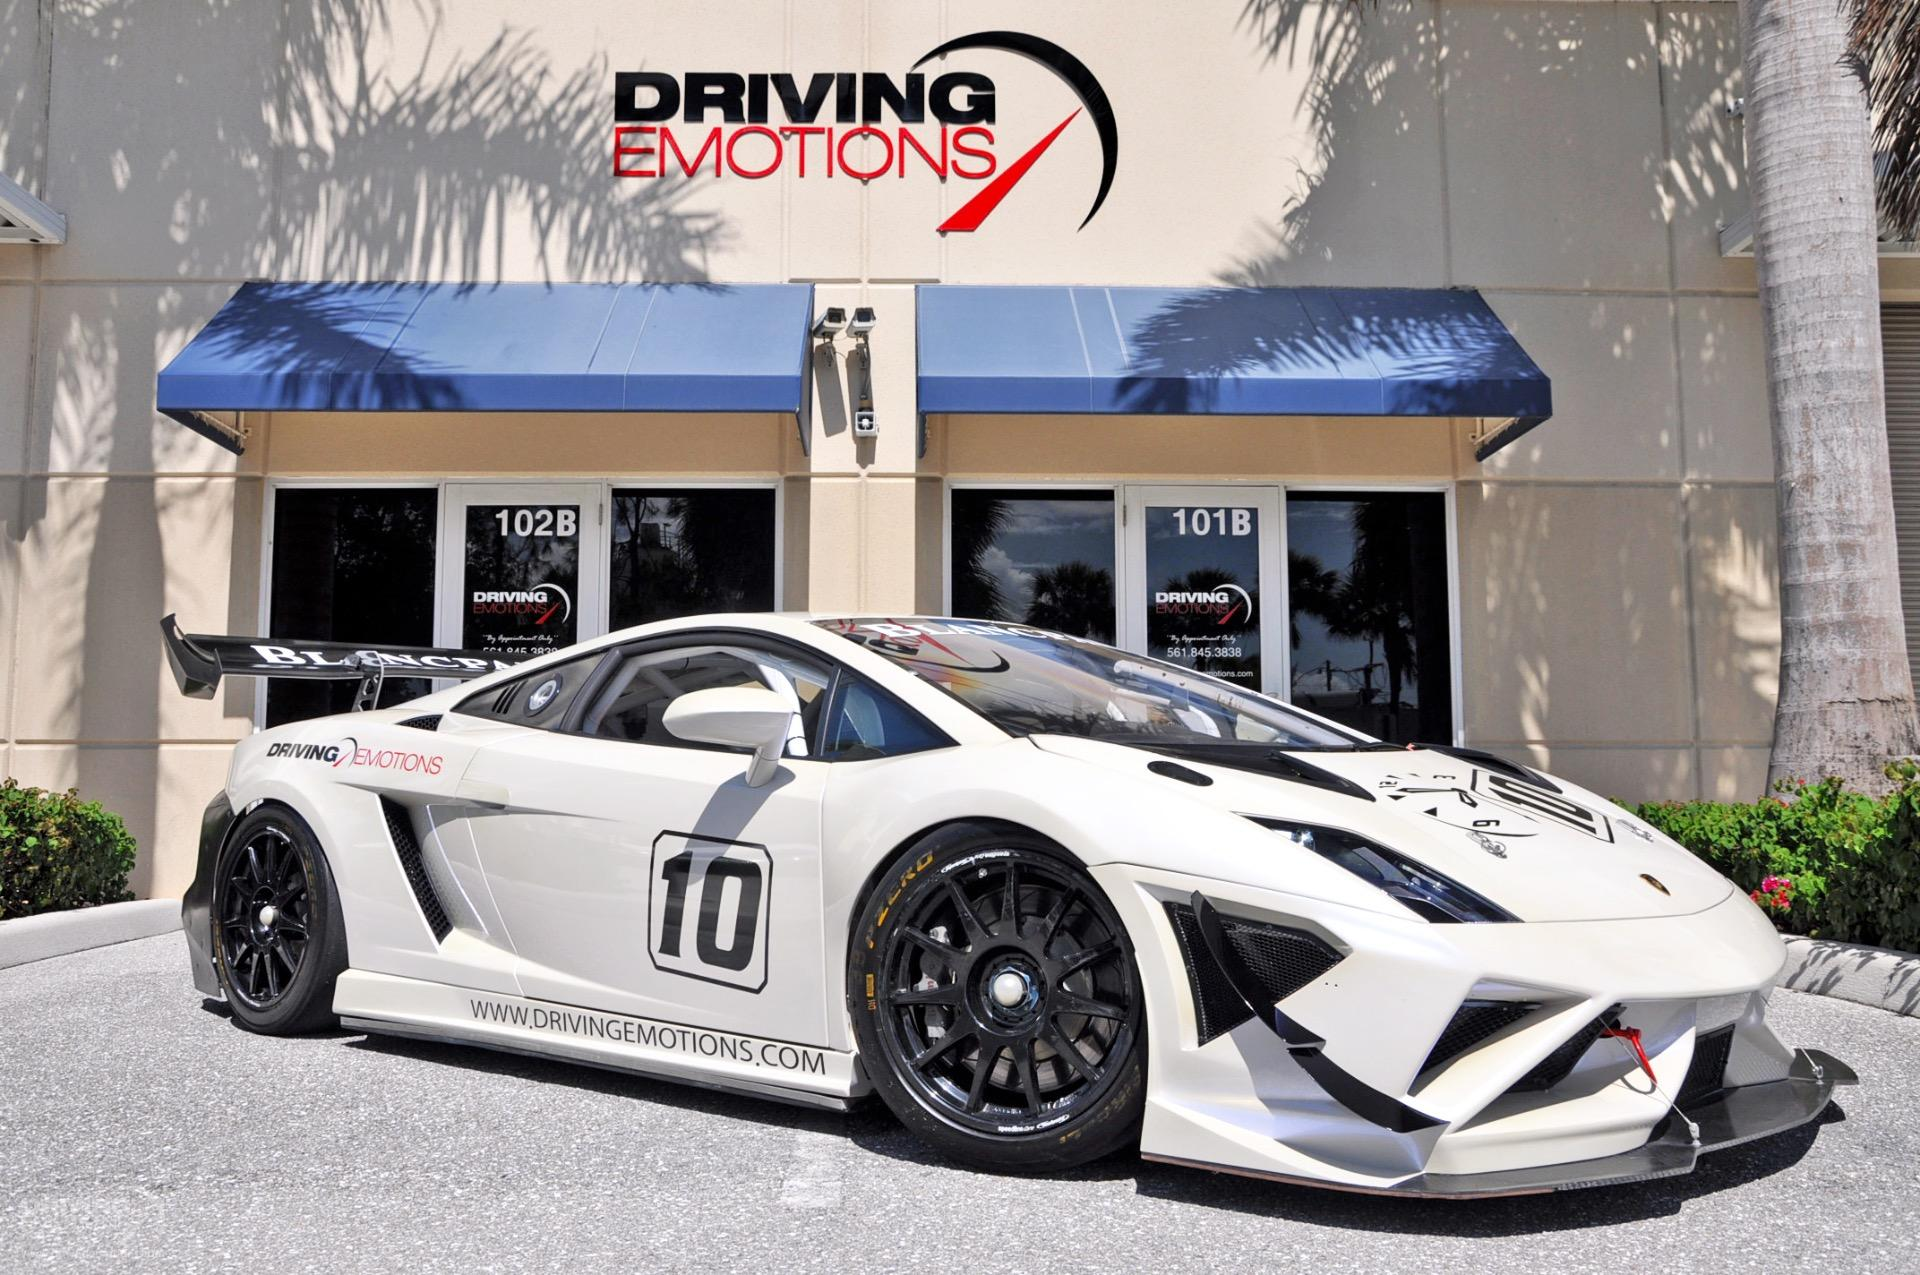 2013 Lamborghini Gallardo LP570,4 Super Trofeo Race Car